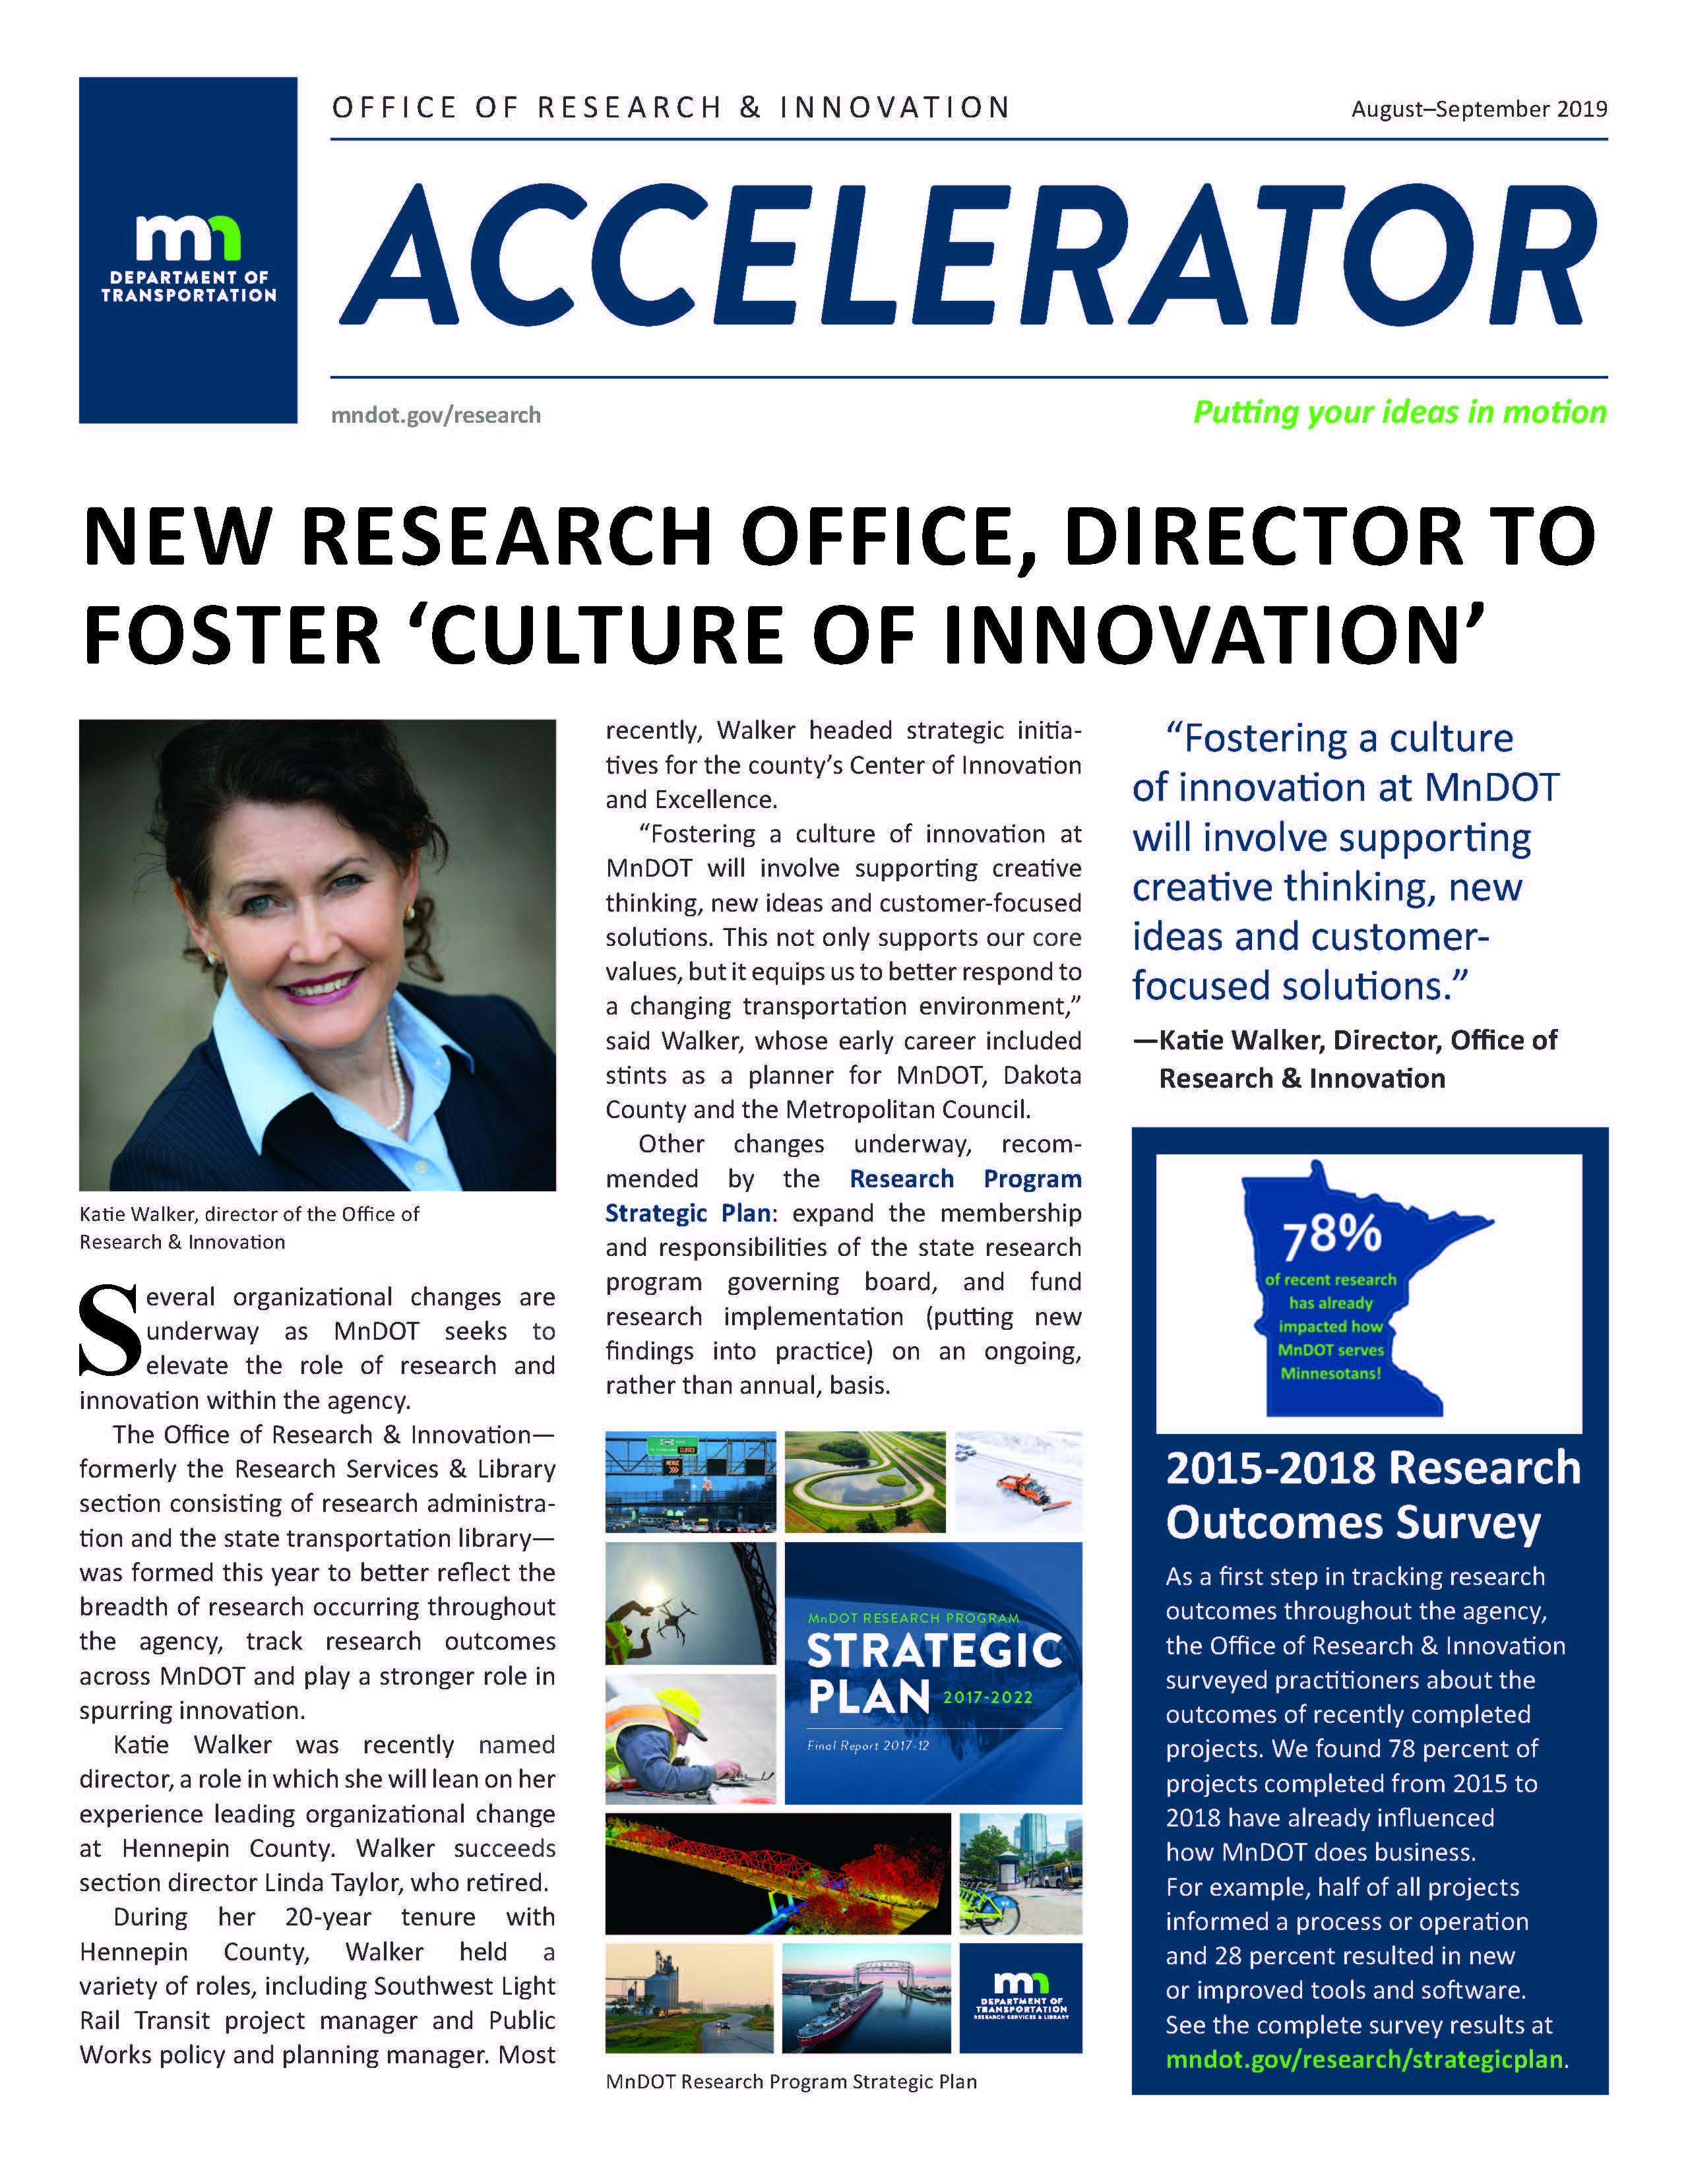 Accelerator cover page